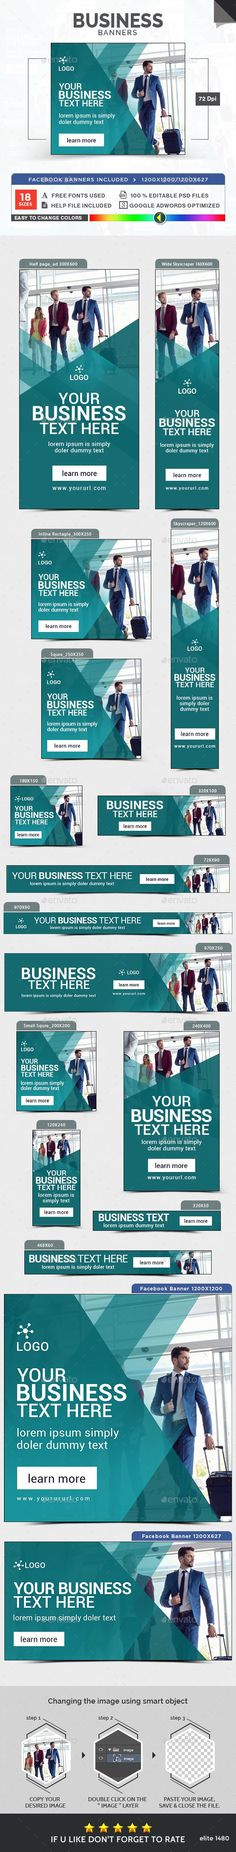 Business Banners — Photoshop PSD #google adwords #web banner • Available here → https://graphicriver.net/item/business-banners/16092272?ref=pxcr